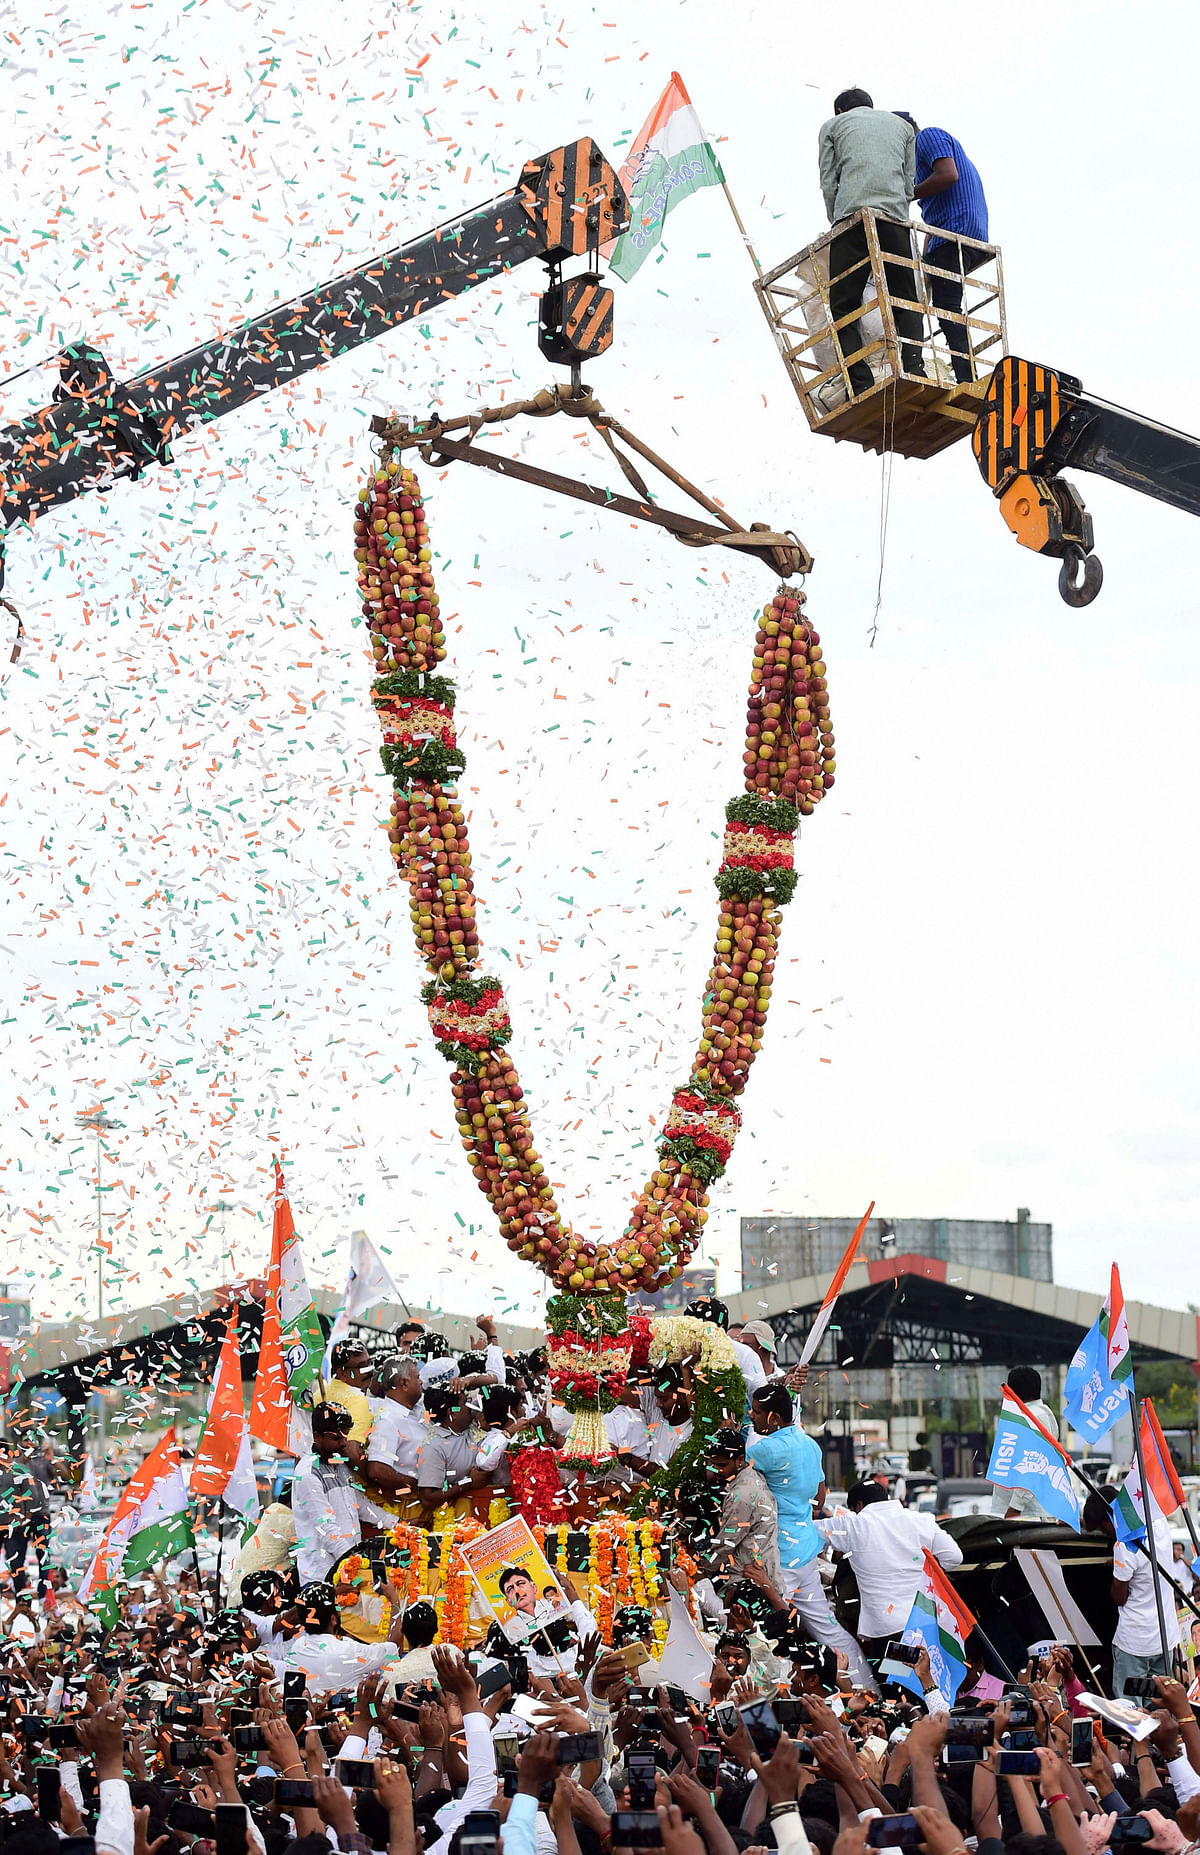 Supporters welcome Congress leader D K Shivakumar with a huge garland made with apples, on his arrival in Bengaluru on Saturday, Oct 26, 2019. (PTI Photo)